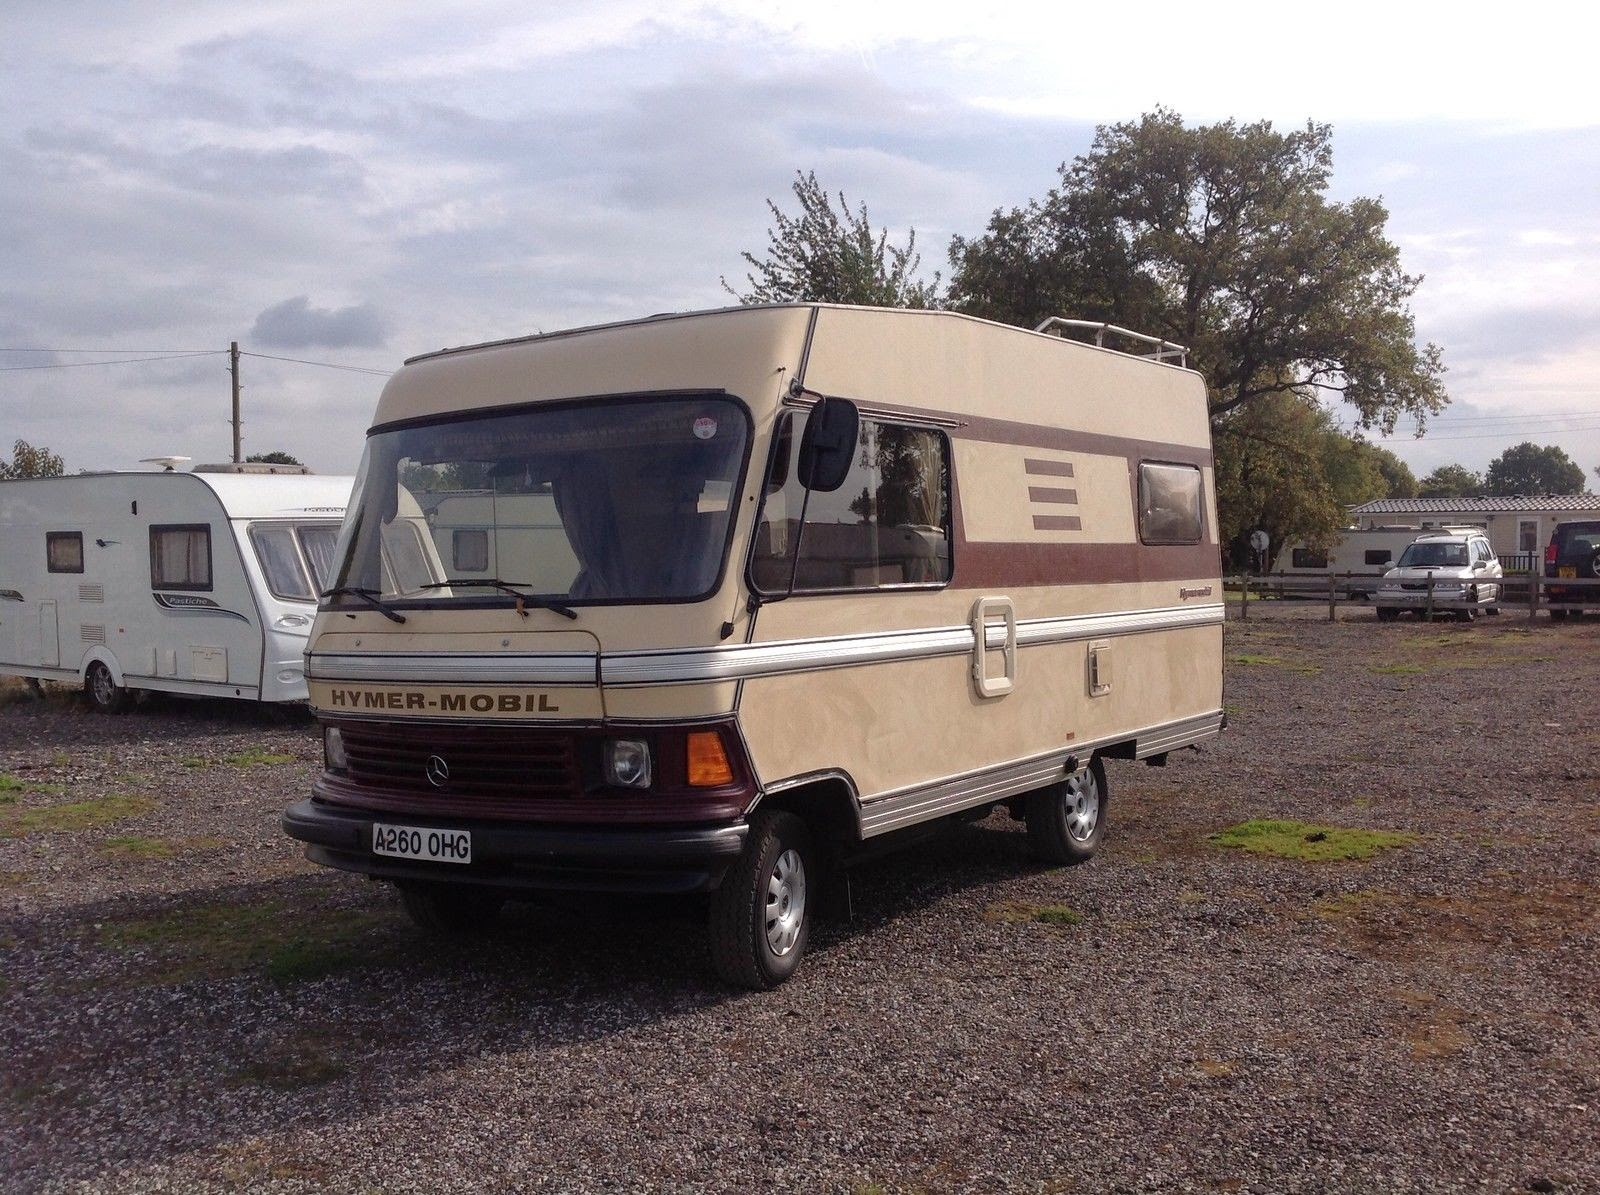 Motorhomes For Sale By Owner >> Used RVs 1983 Hymer Motorhome for Sale For Sale by Owner